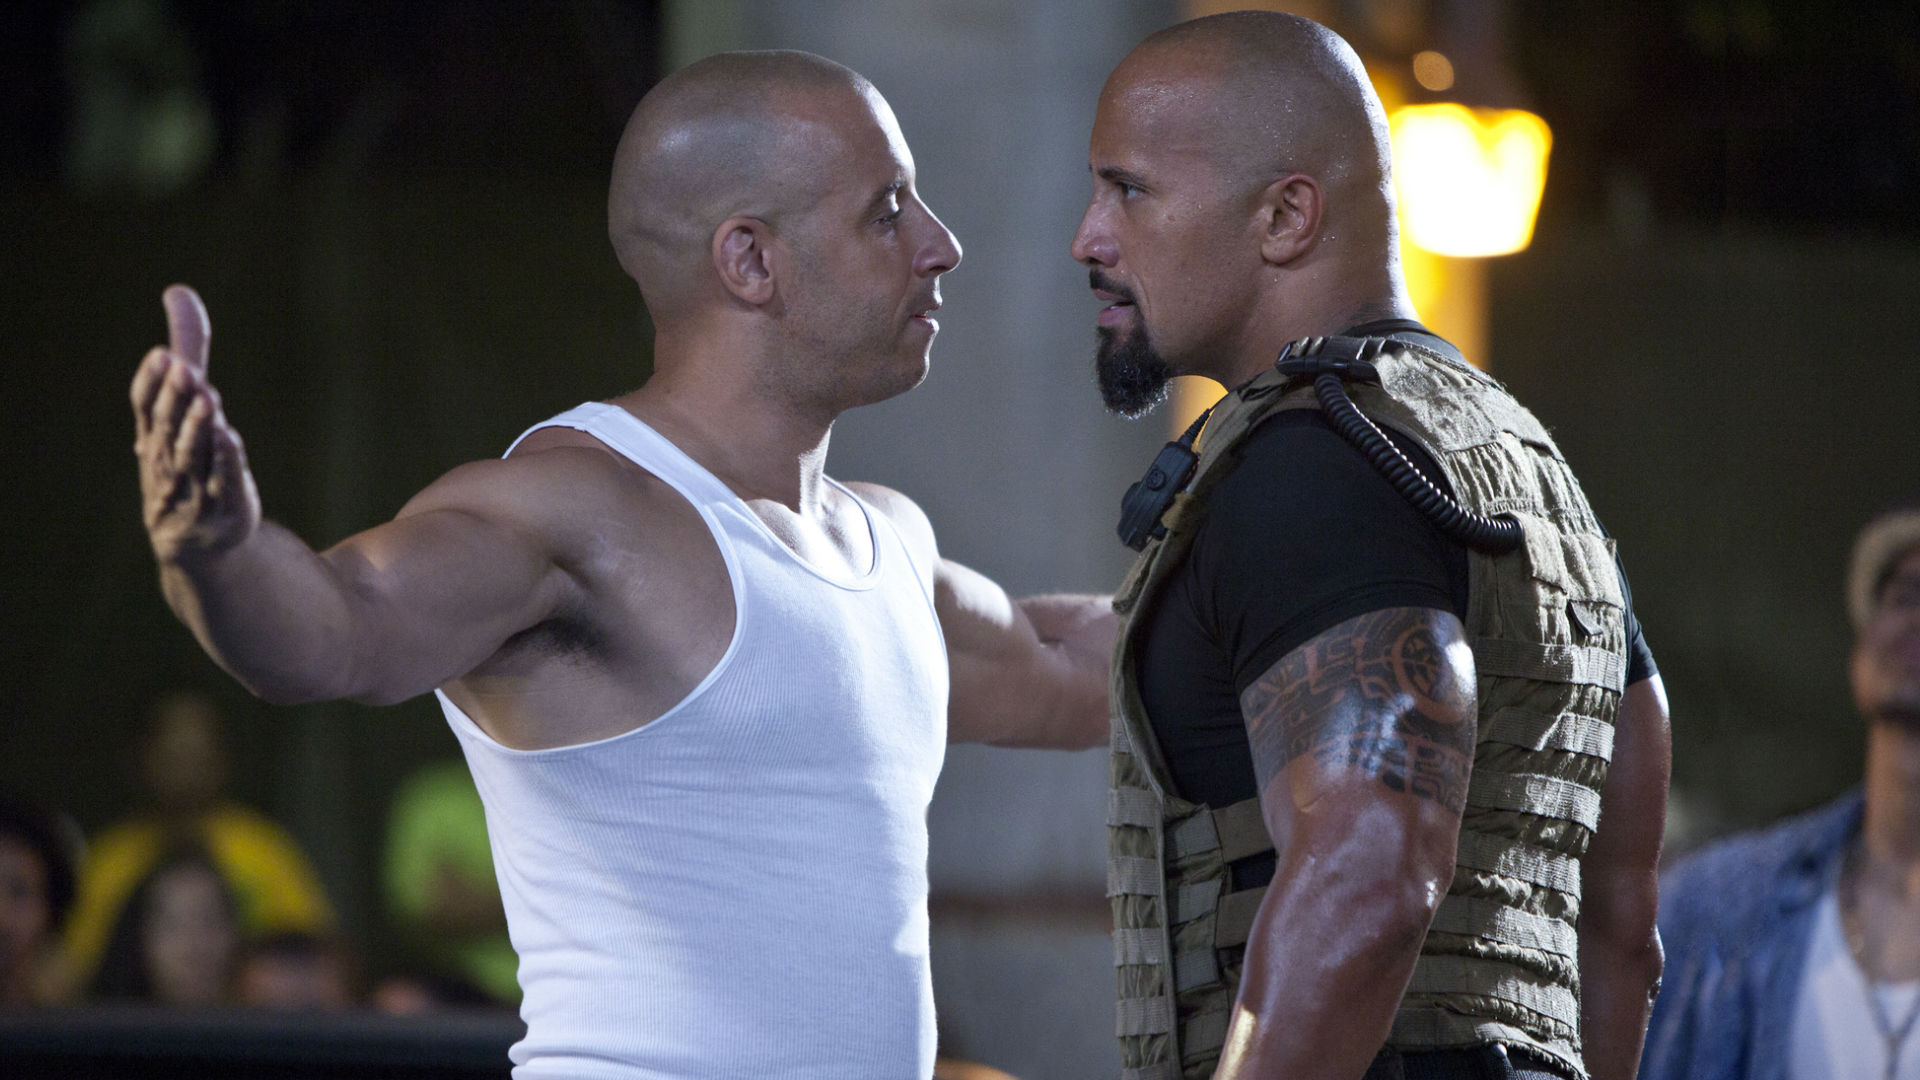 Vin Diesel and Dwayne Johnson's Fast & Furious feud